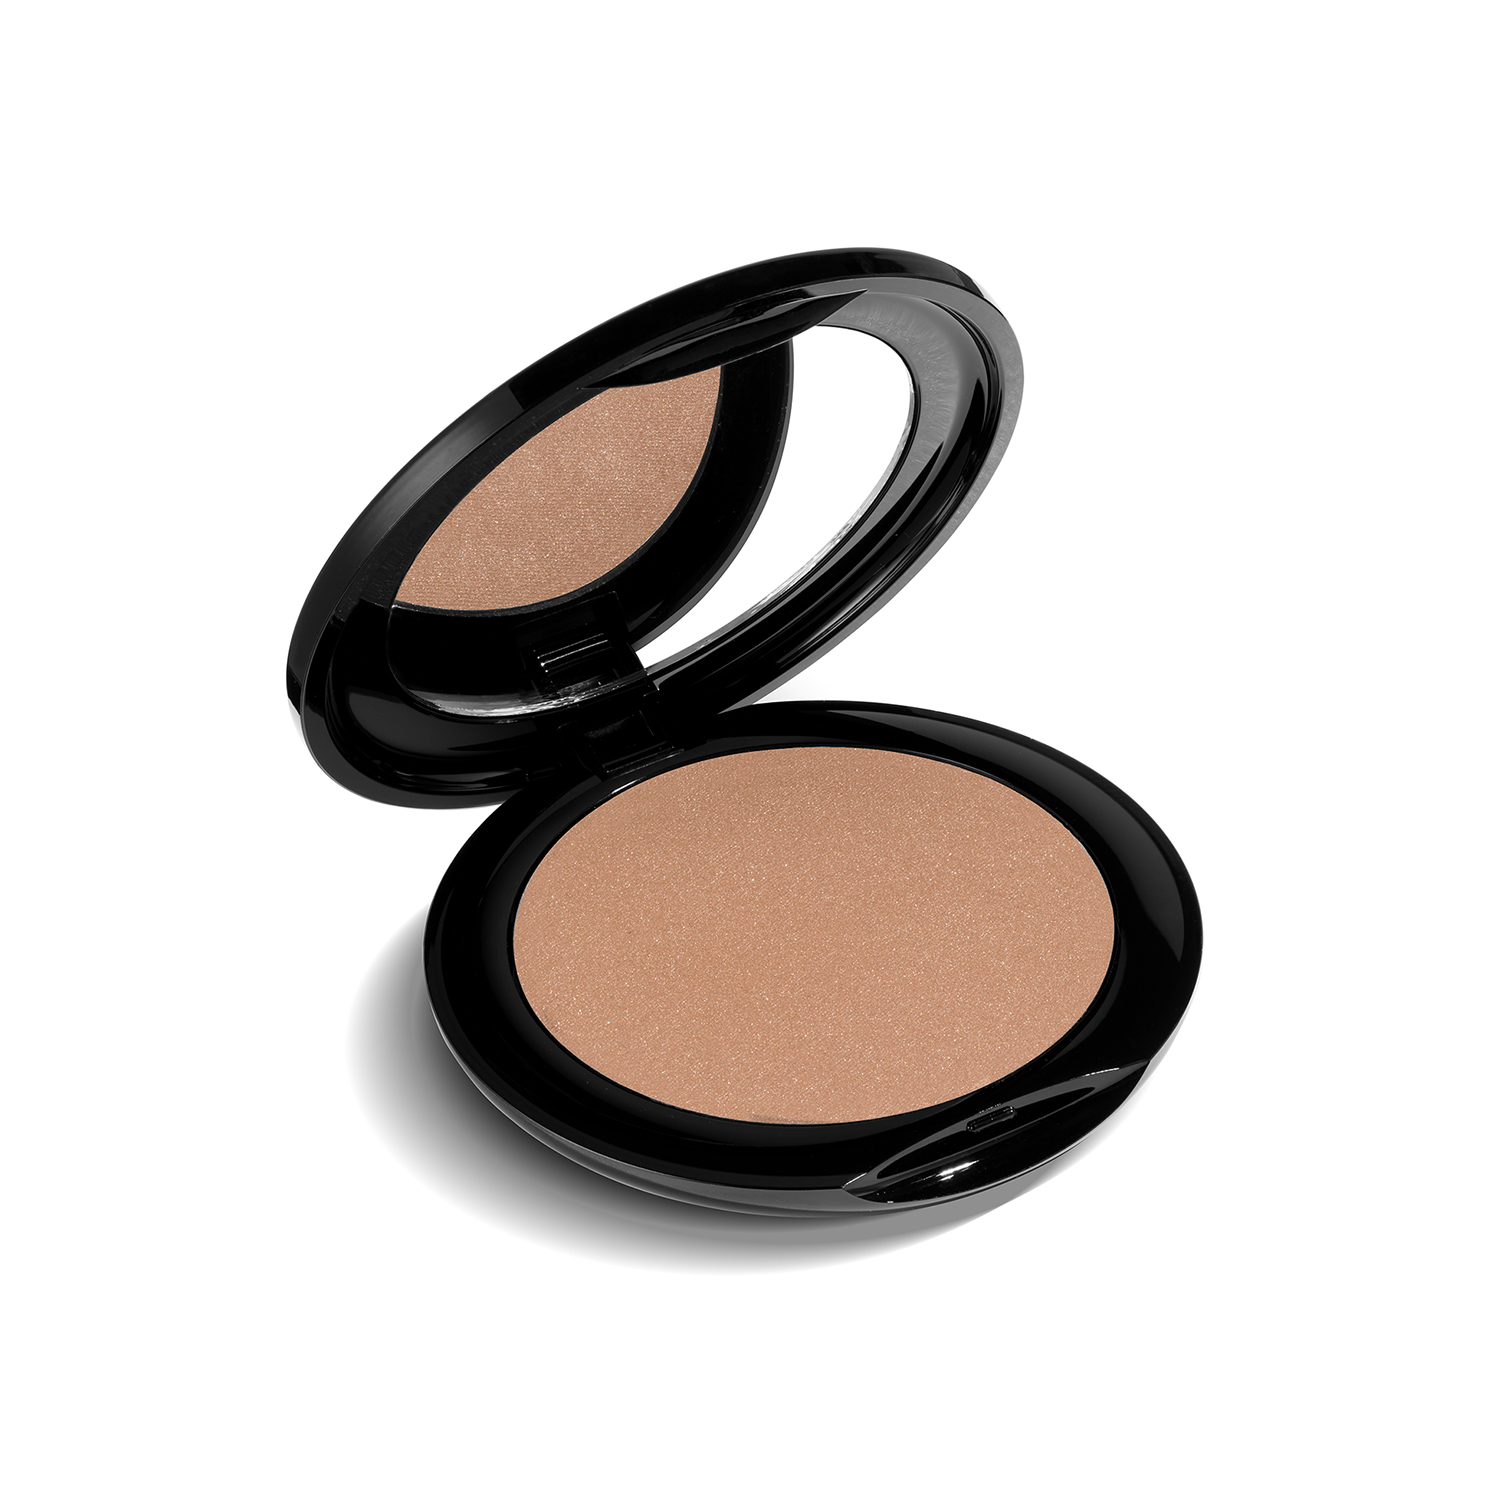 PERFECT FINISH COMPACT FACE POWDER (05 Medium Tan)